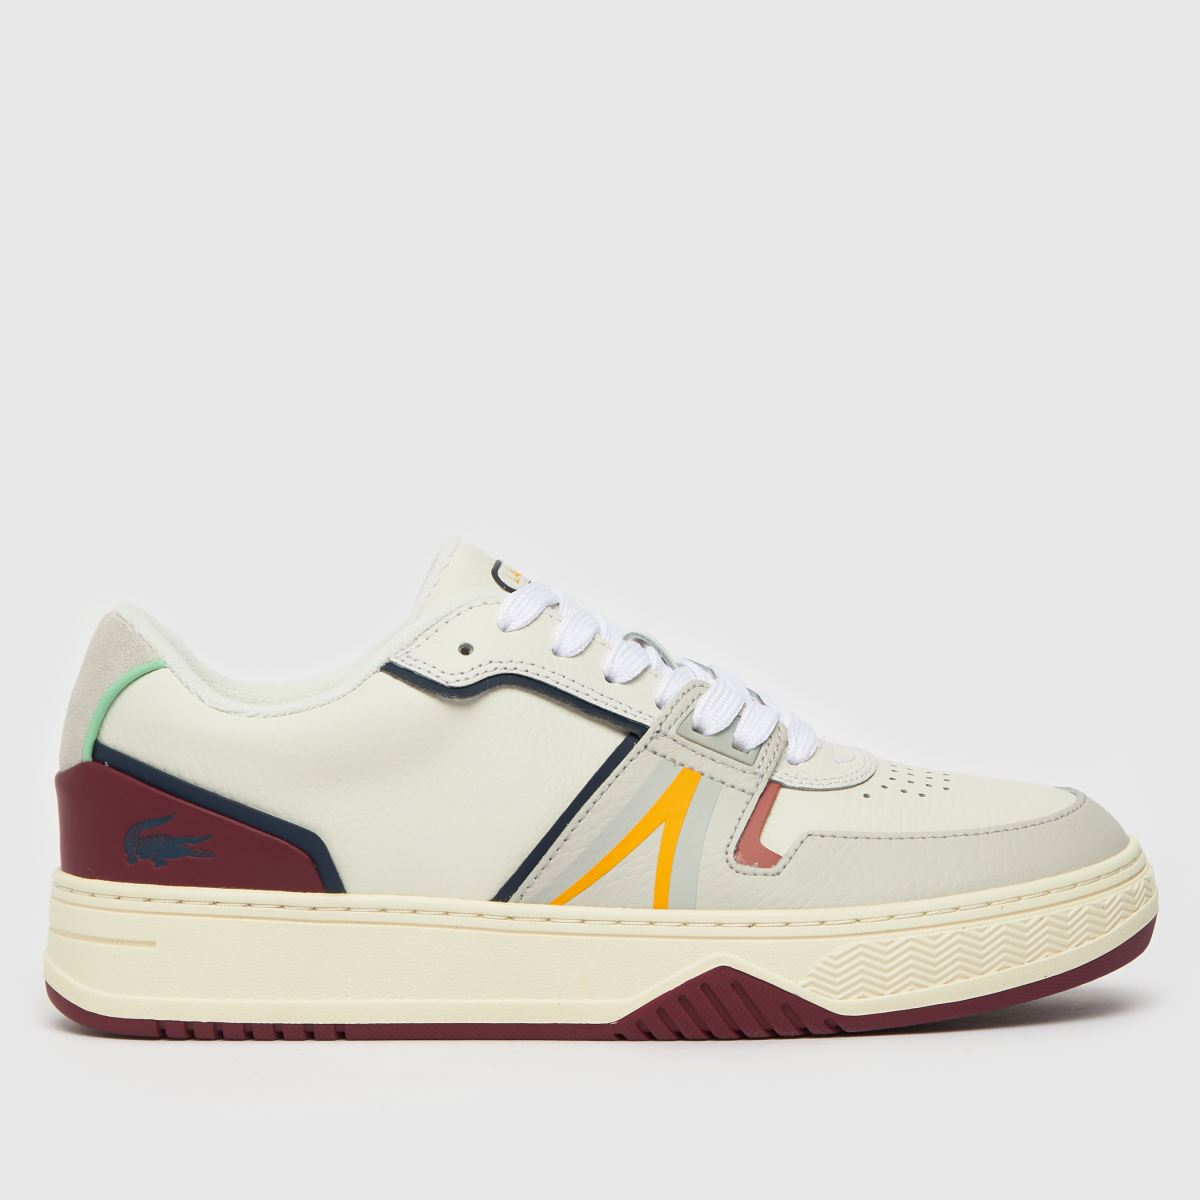 Lacoste White & Burgundy L001 Trainers